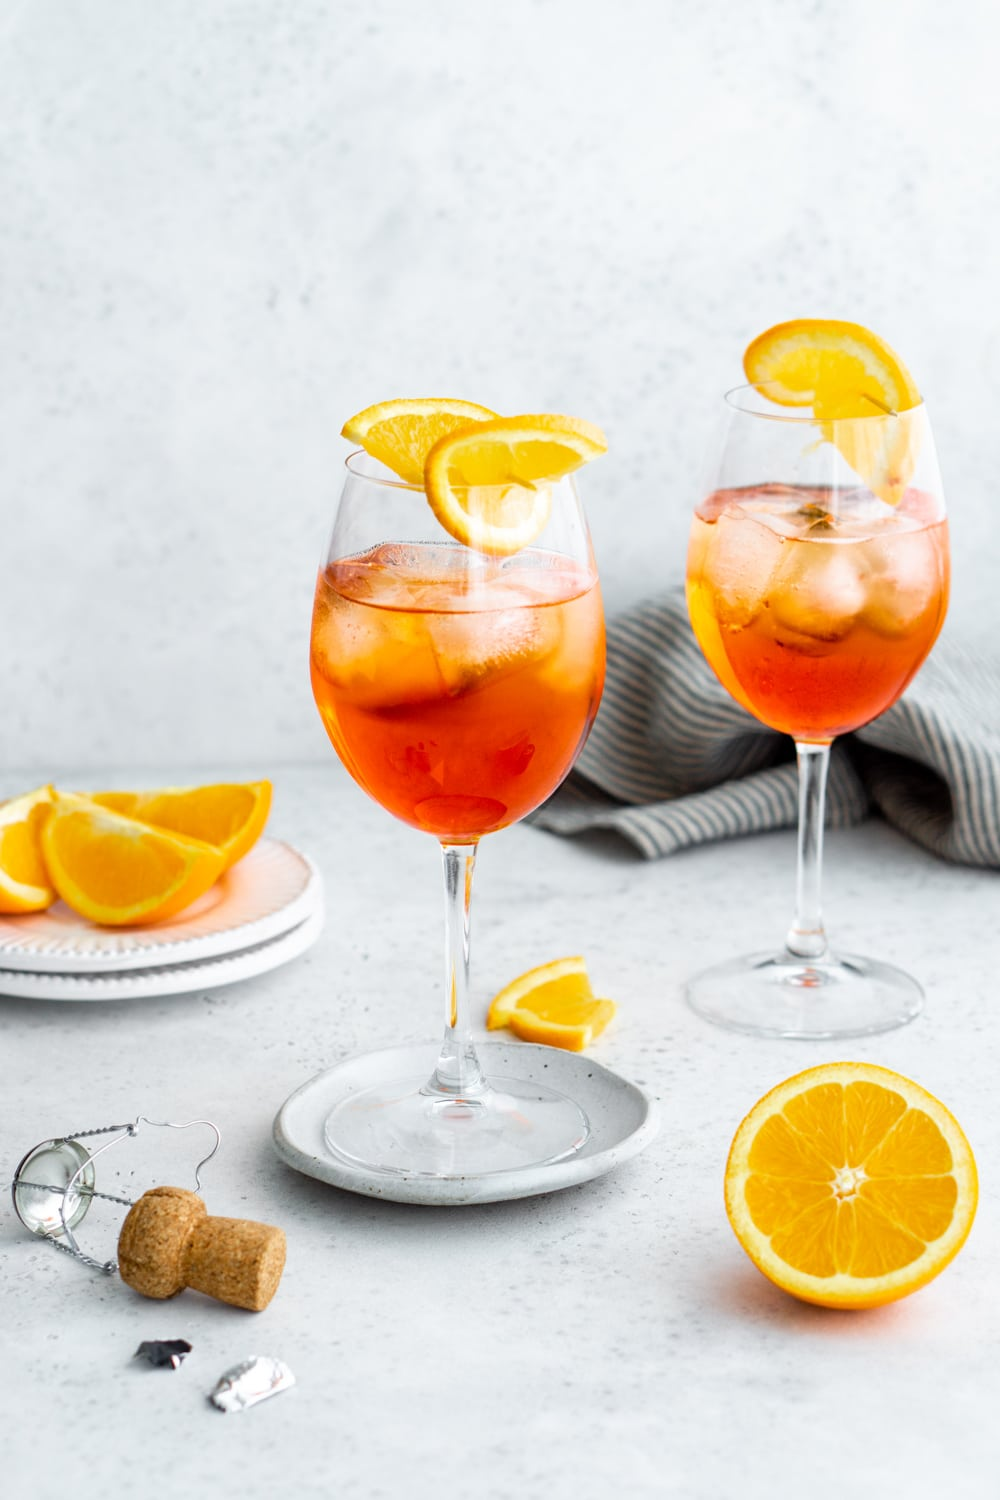 2 glasses of aperol spritz with oranges in the background